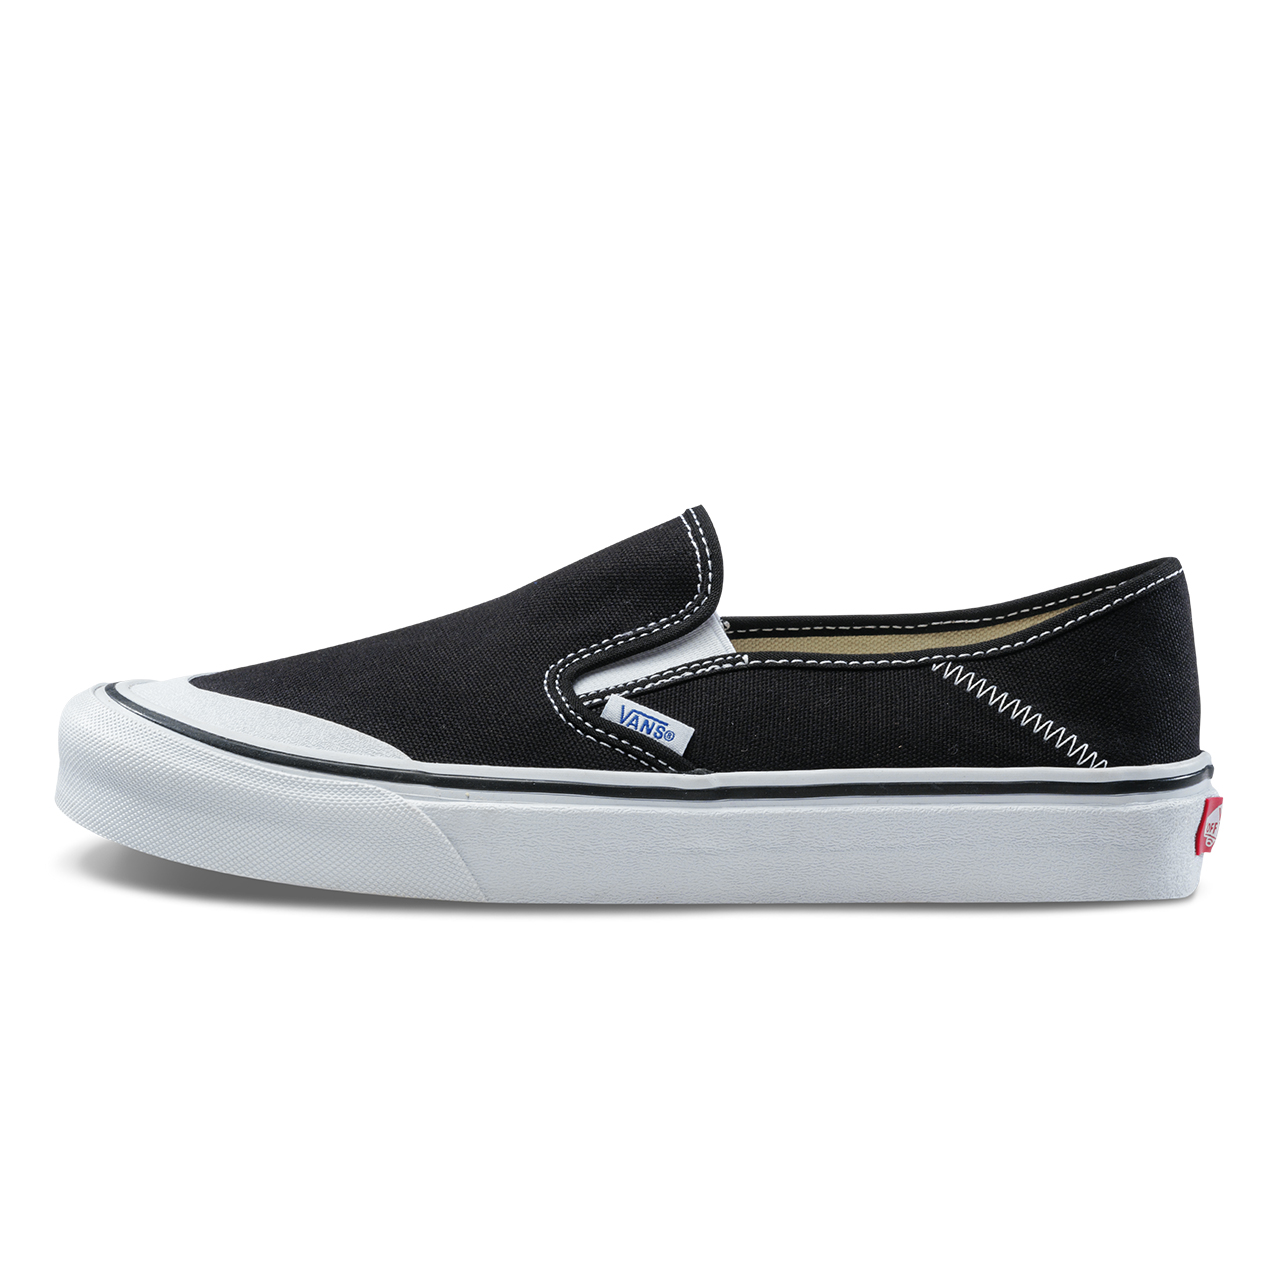 все цены на Original New Arrival Vans Men's & Women's Slip-On SF Low-top Skateboarding Shoes Sport Outdoor Sneakers Canvas VN0A3MVDY28/T1Y онлайн